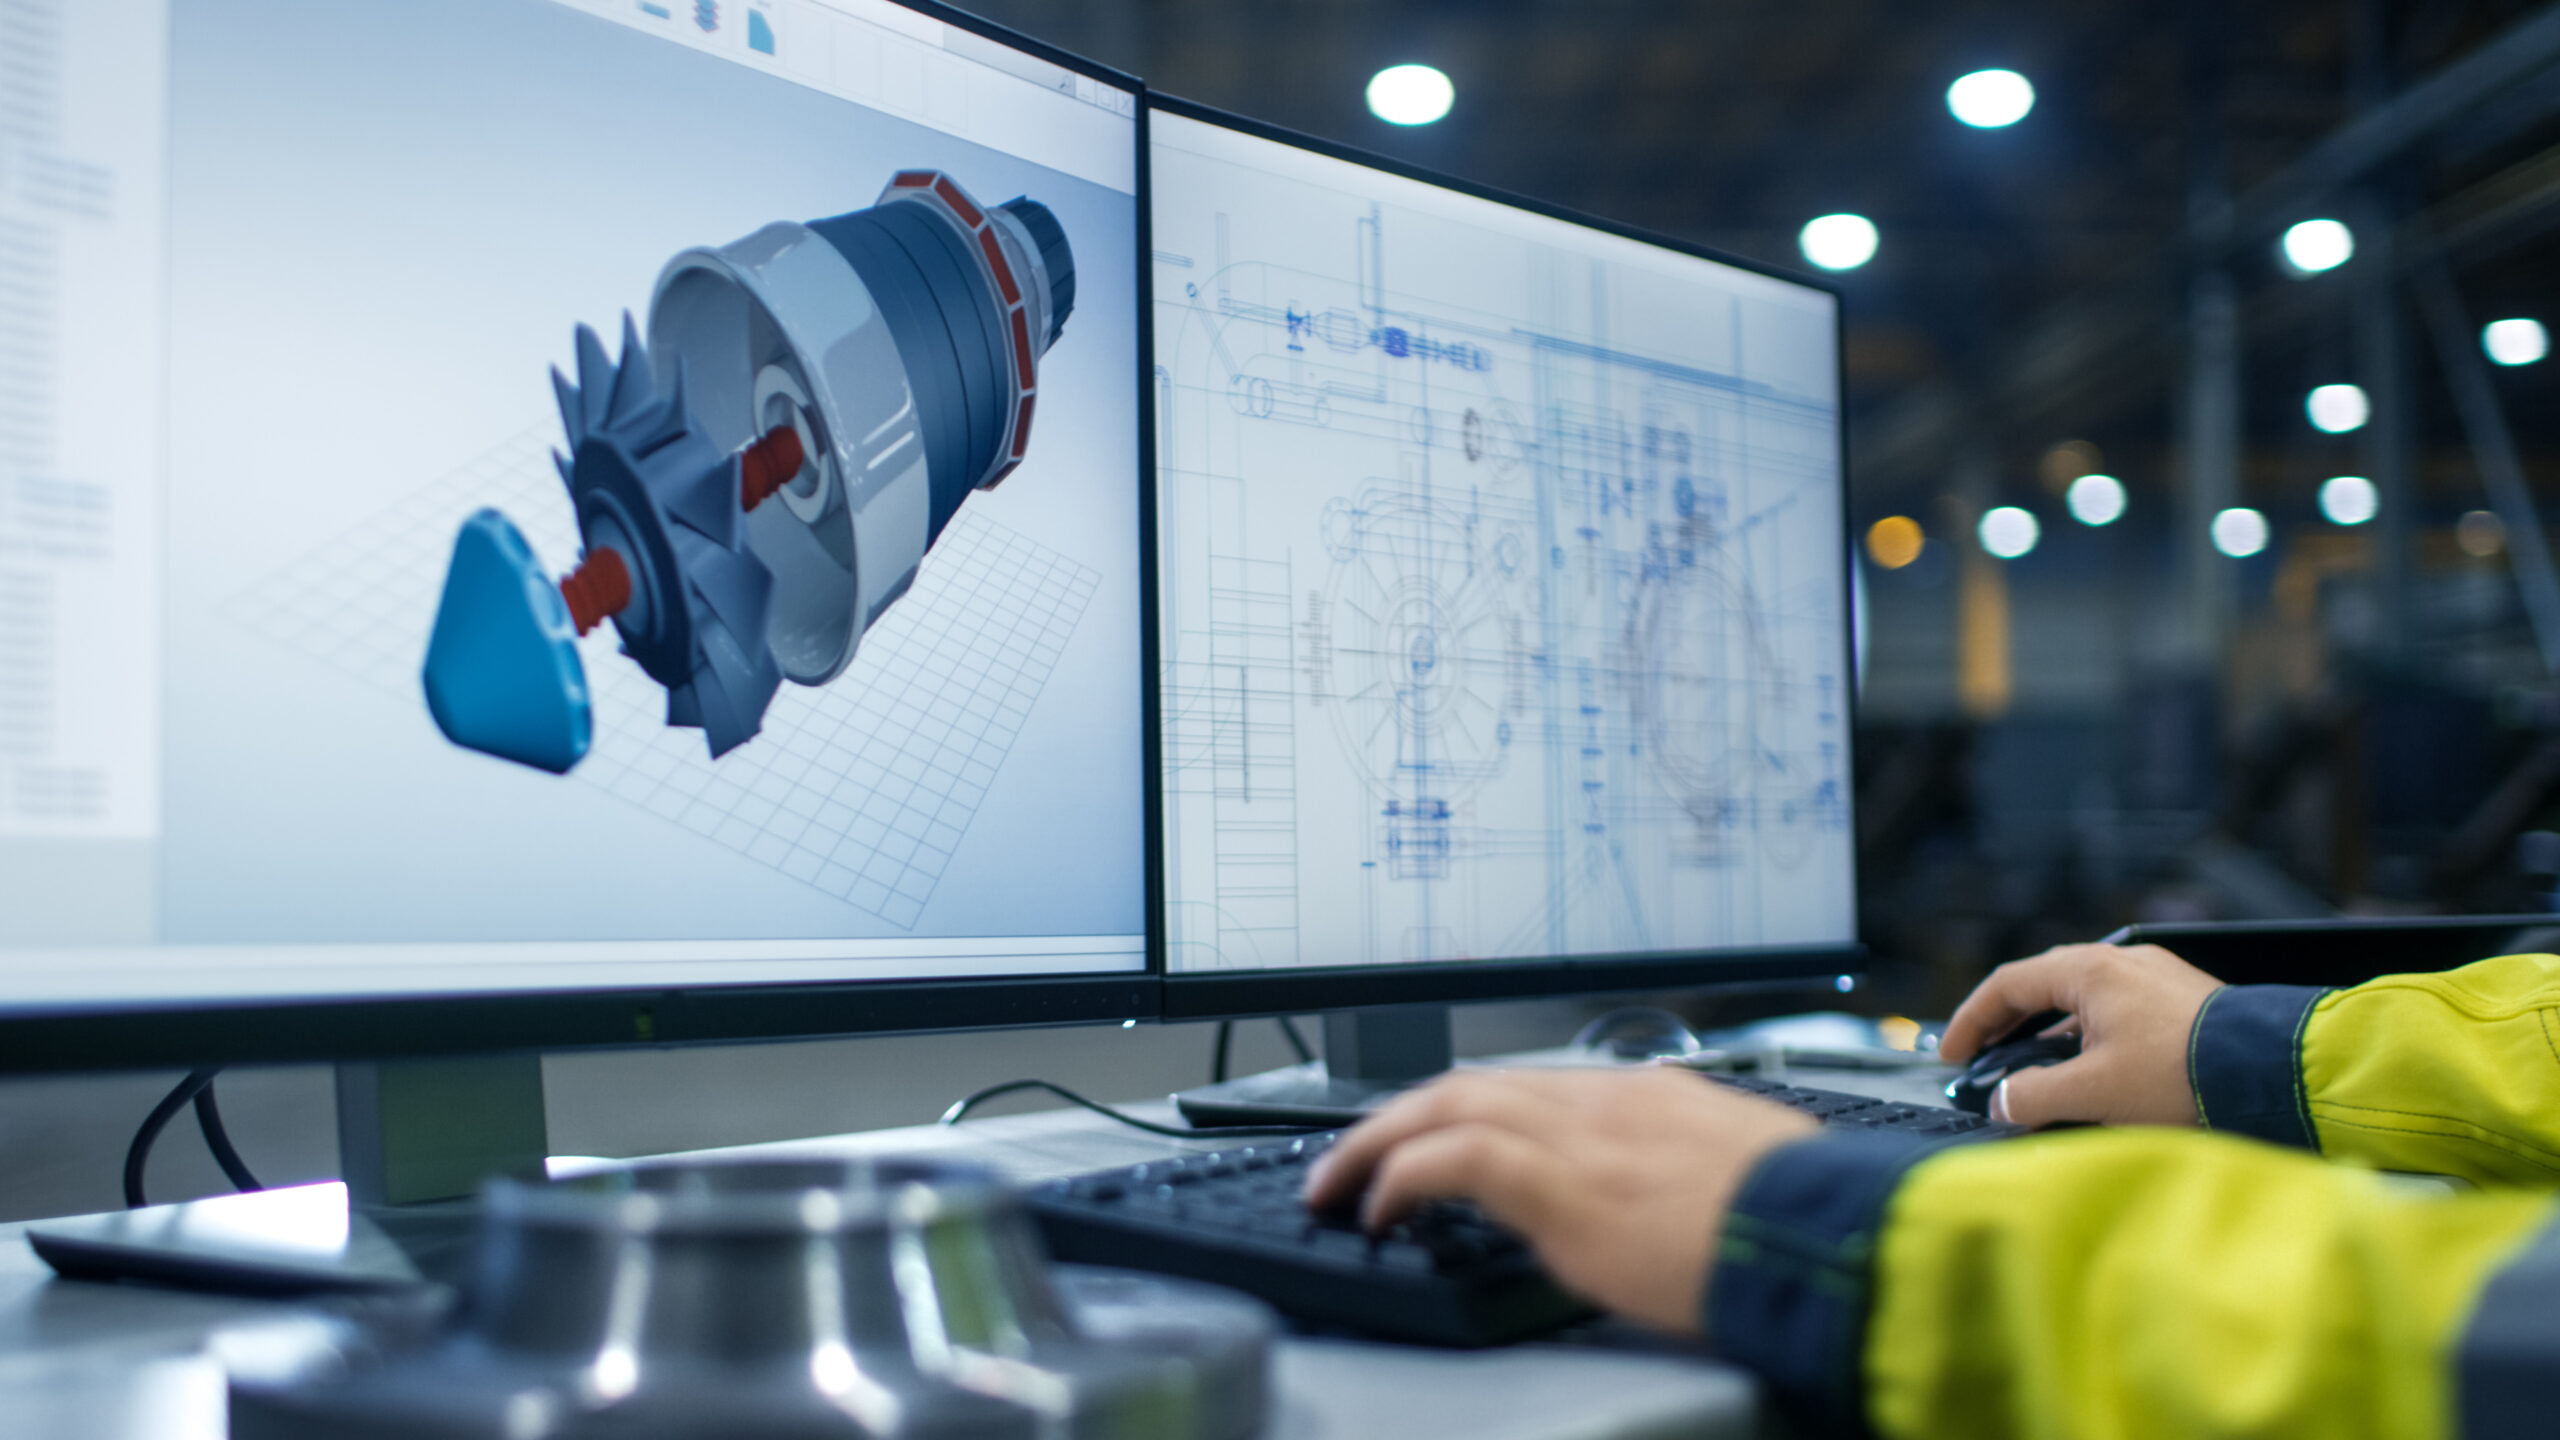 Inside the Heavy Industry Factory Close-up Footage of  Industrial Engineer's Hands Working on the Personal Computer with Two Monitors Designing Turbine/ Engine in 3D, Using CAD Program.